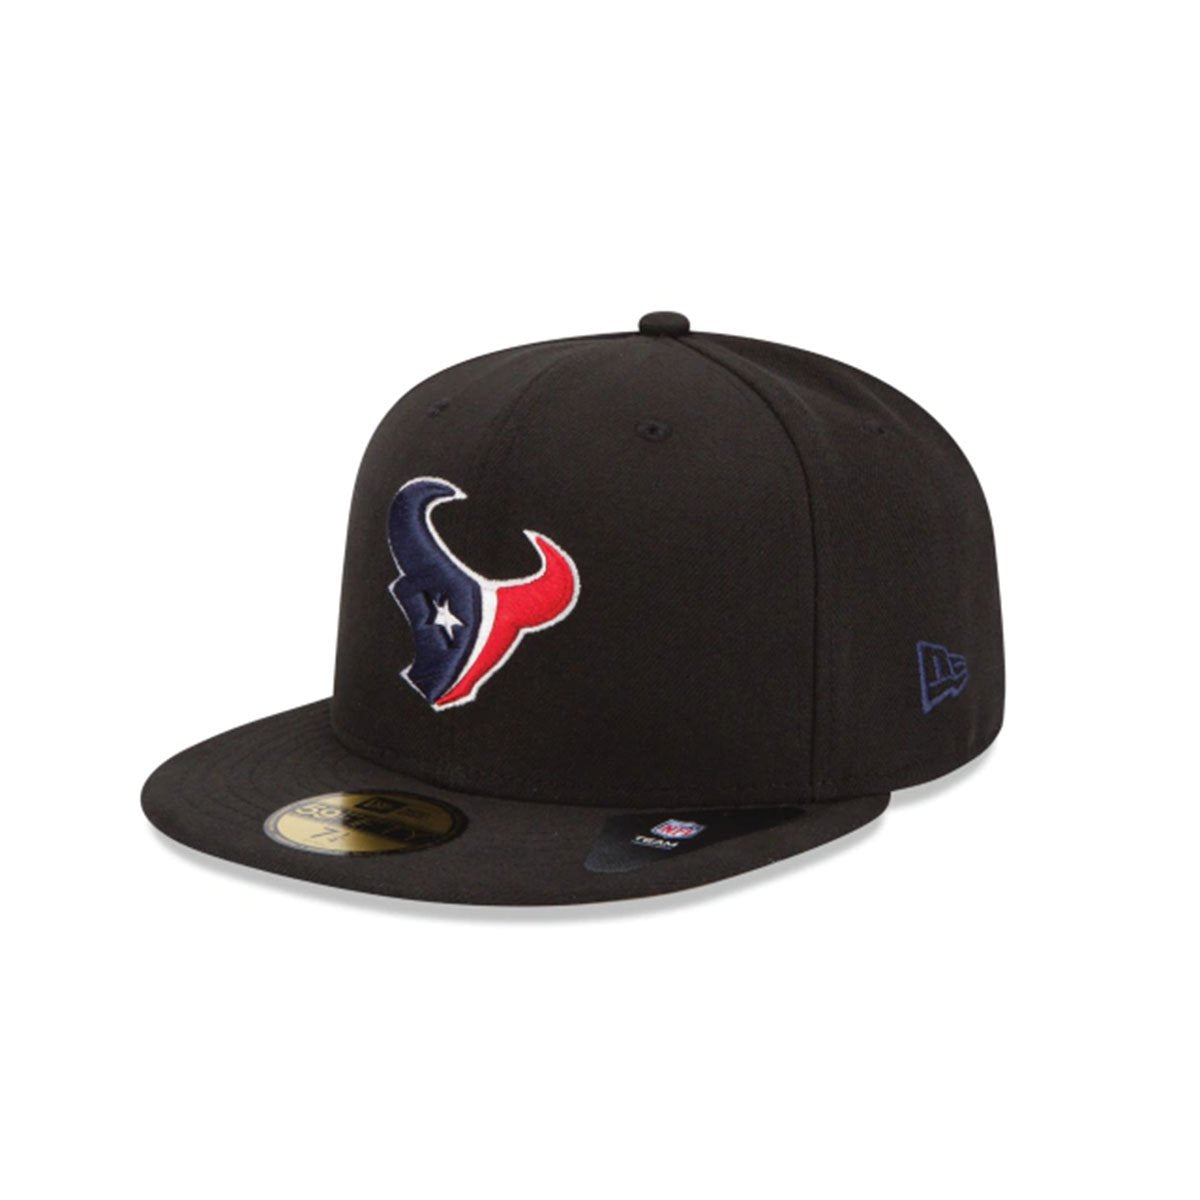 HOUSTON TEXANS 59FIFTY FITTED BLACK/NAVY